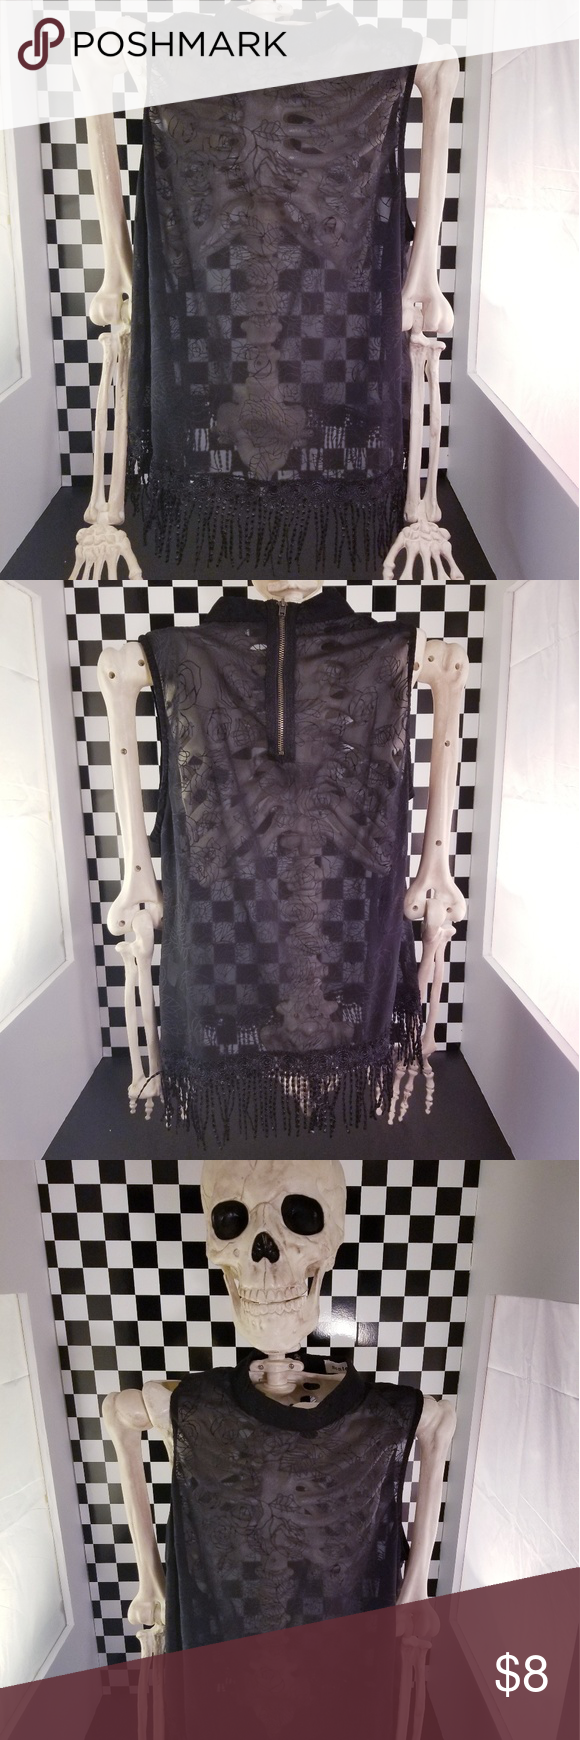 Sheer Flapper Top Swirly black flower designs on a sheer light top with flapper fringe accents! Ghost the graveyard properly with the right spooky outfit! ☠☠☠  In good condition. Minor wear. No holes or stains  Sheer Flapper Top Swirly black flower designs on a sheer light top with flapper fringe accents! Ghost the graveyard properly with the right spooky outfit! ☠☠☠  In good condition. Minor wear. No holes or stains #spookyoutfits